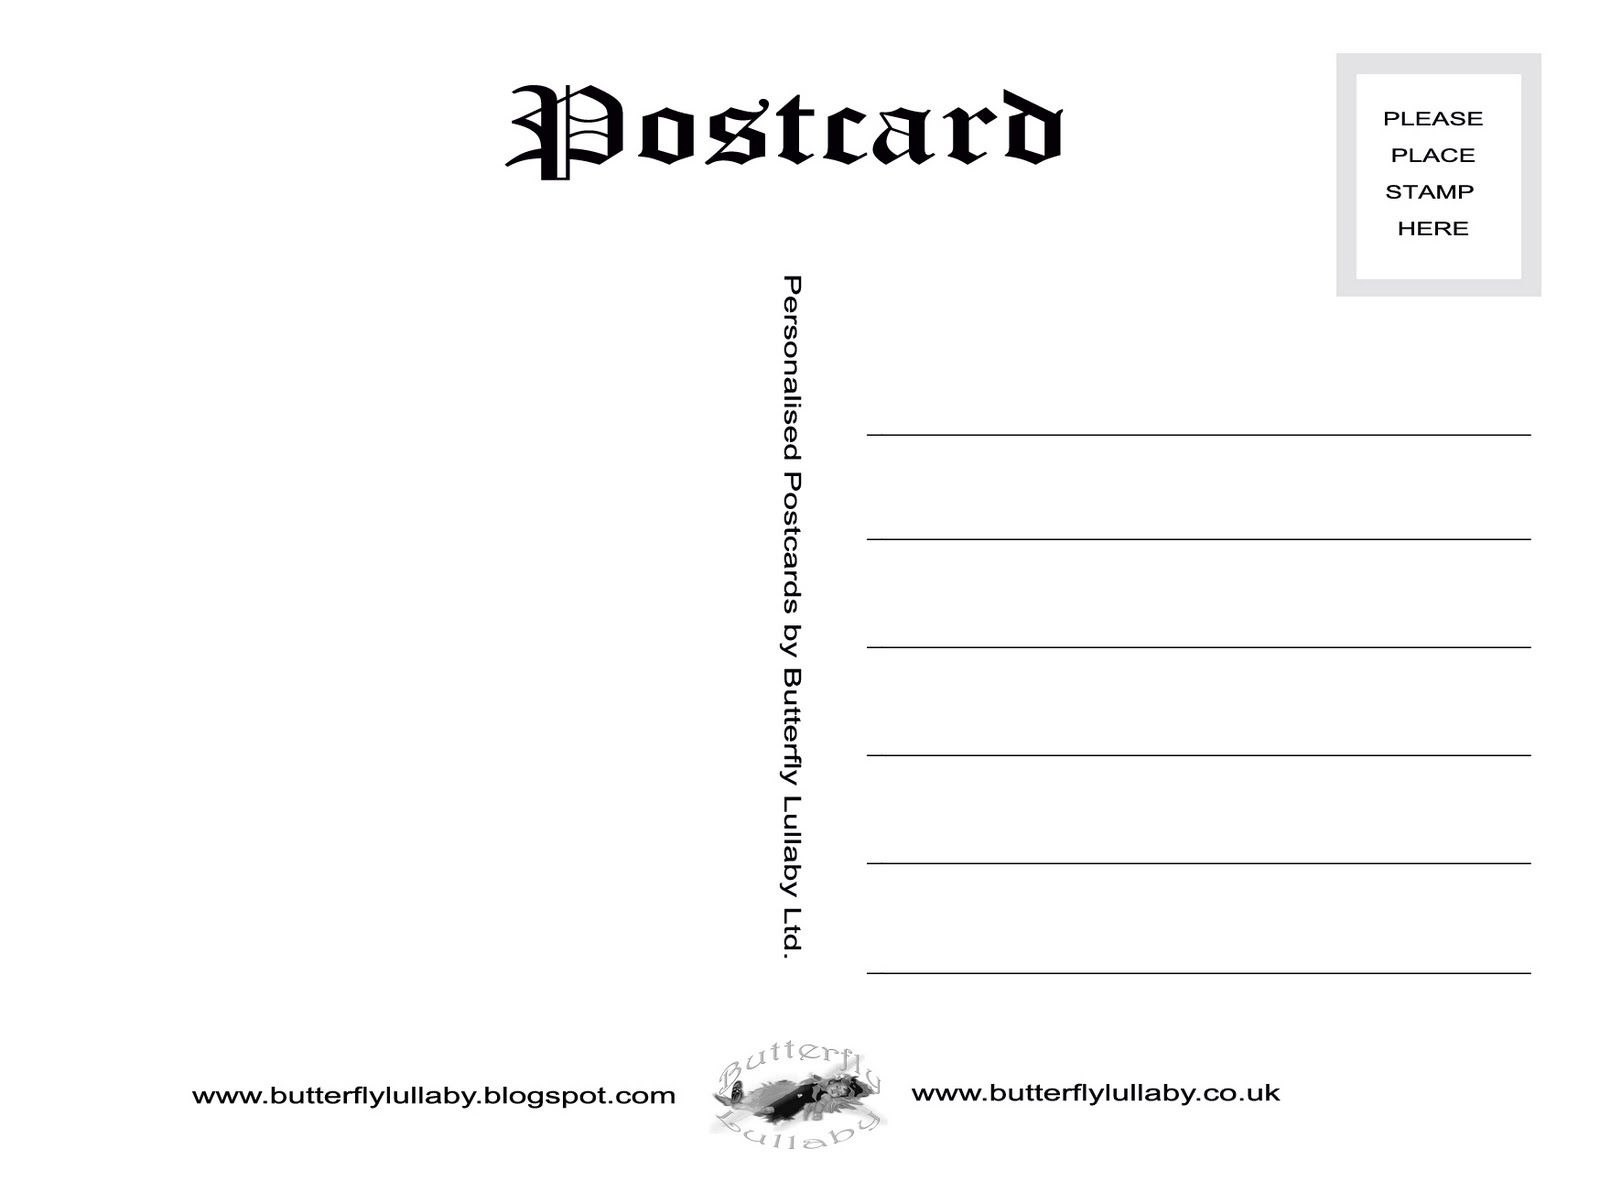 Post Card Template  Print Off The Butterfly Lullaby Postcard Within 4X6 Photo Card Template Free